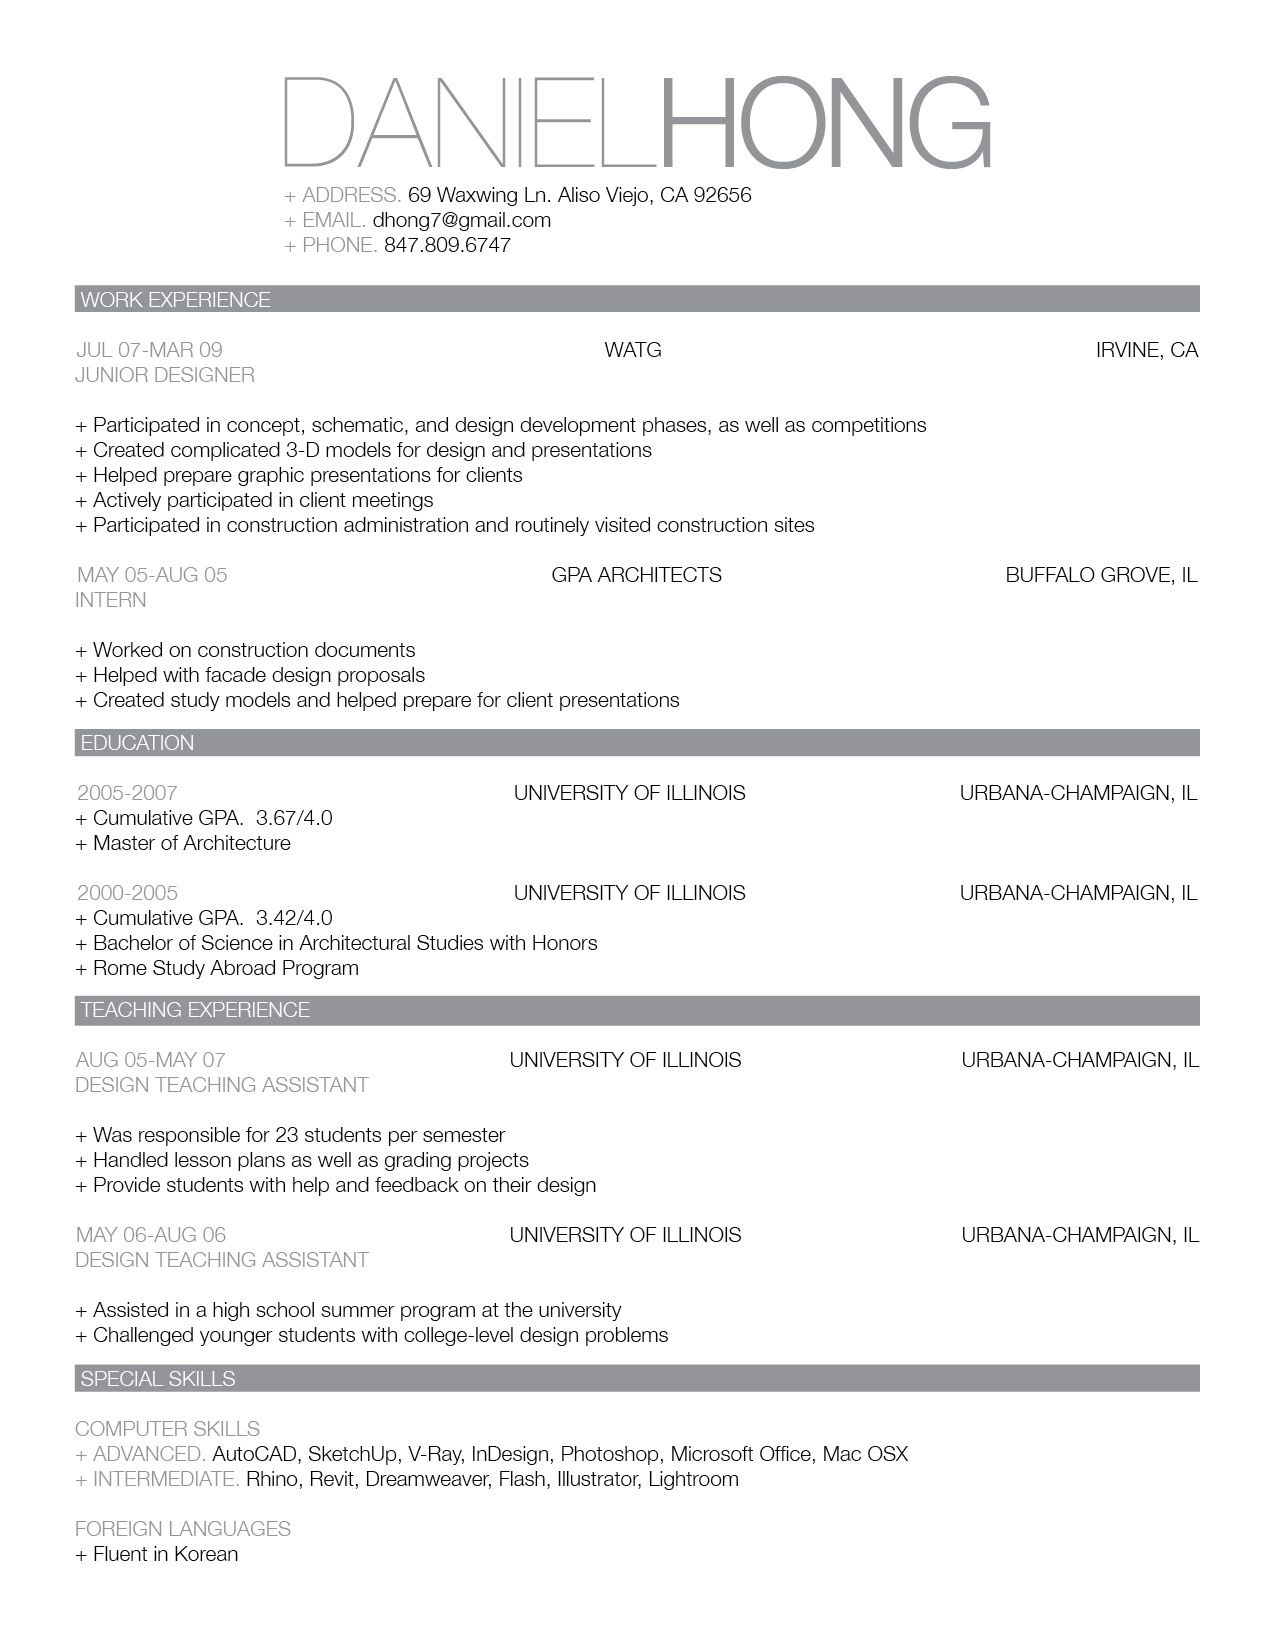 Updated CV and Work Sample. Best Resume TemplateResume ...